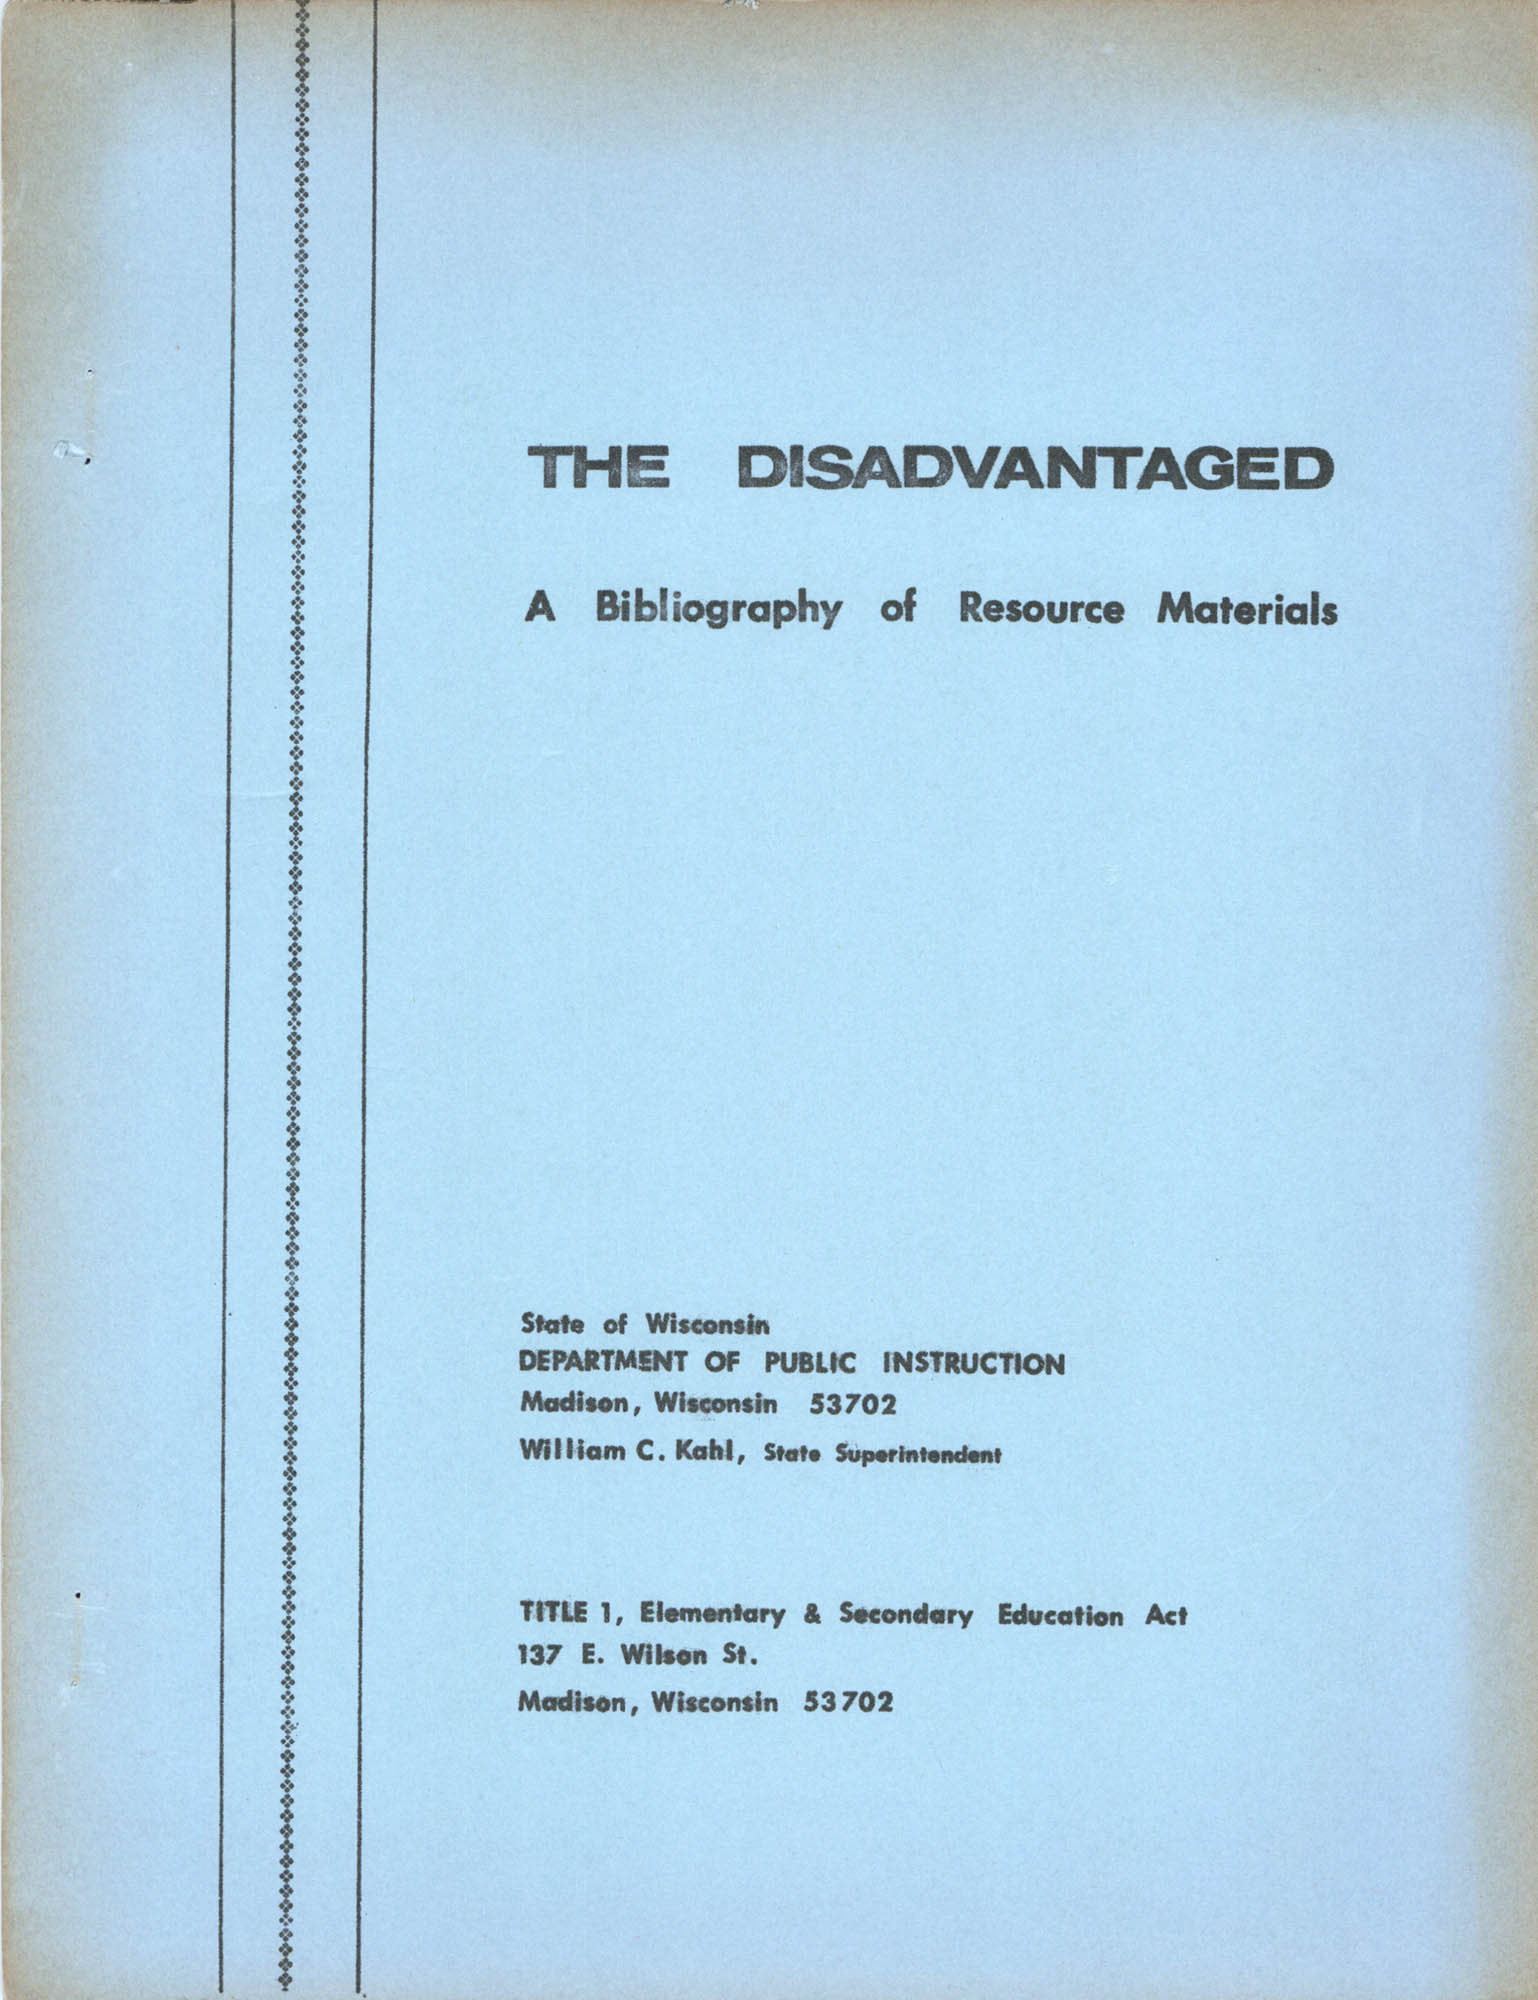 The Disadvantaged, A Bibliography of Resource Materials, Cover